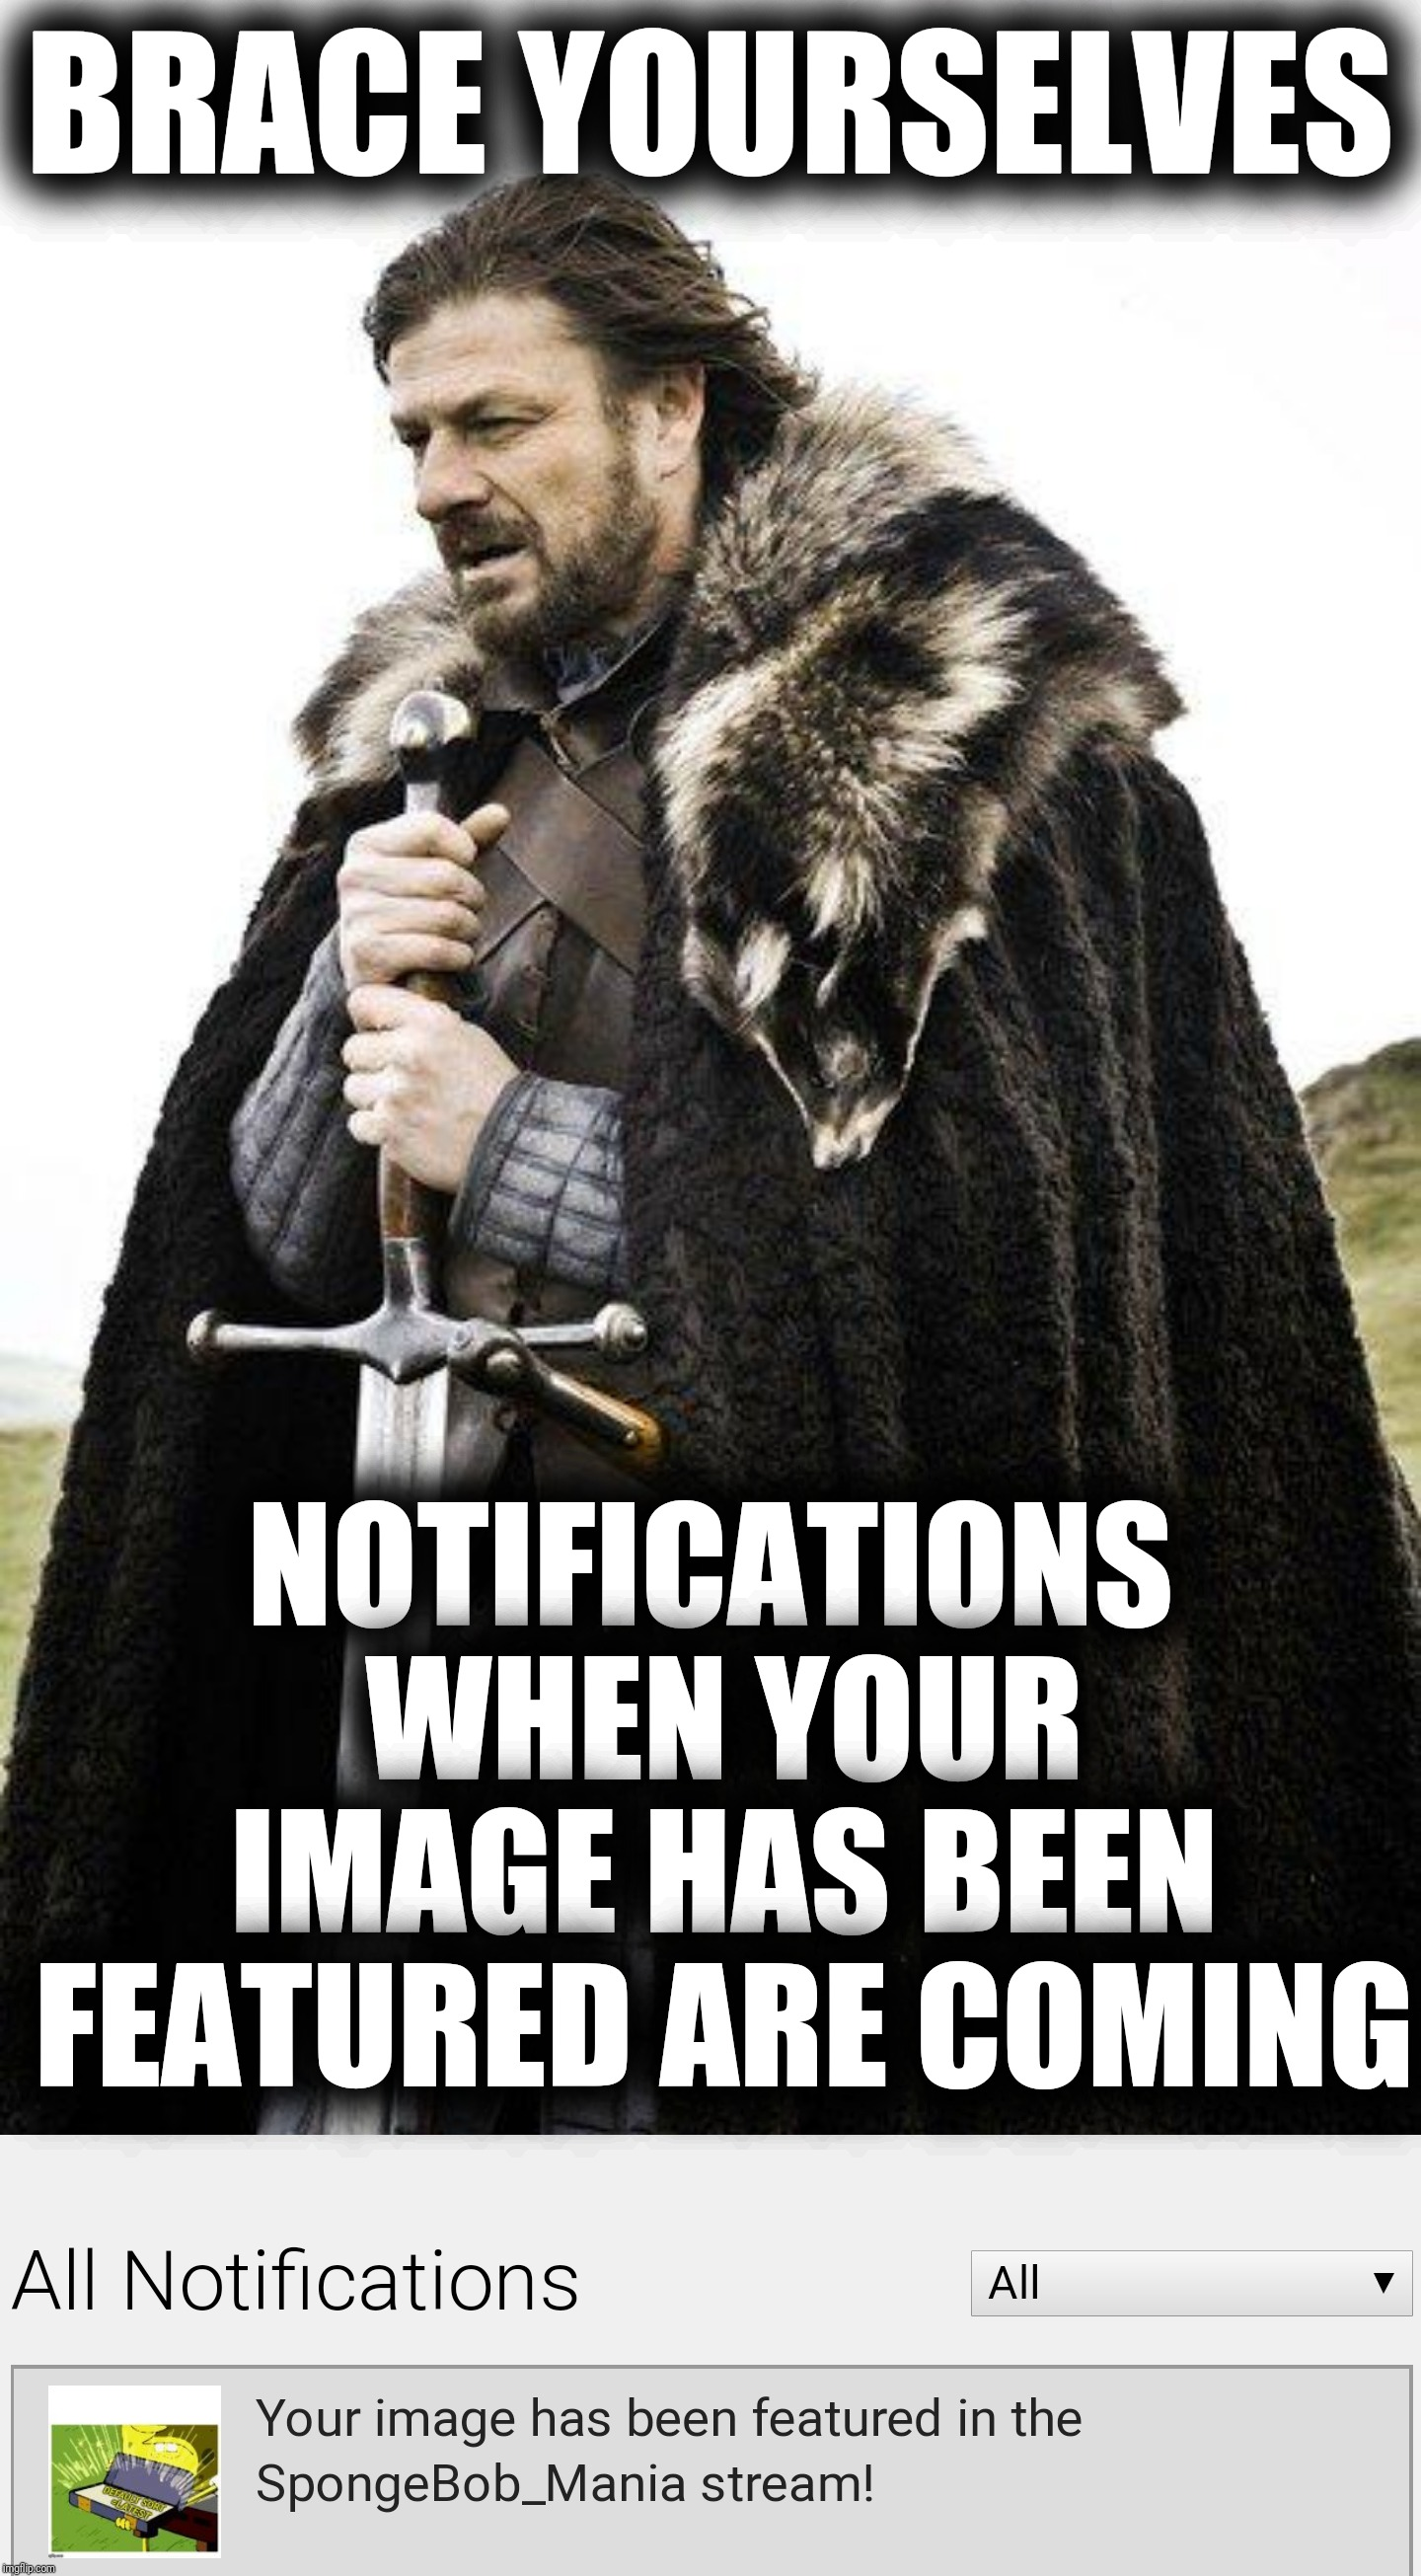 Imgflip news of the day | BRACE YOURSELVES NOTIFICATIONS WHEN YOUR IMAGE HAS BEEN FEATURED ARE COMING | image tagged in brace yourself,notifications,imgflip news,new feature | made w/ Imgflip meme maker